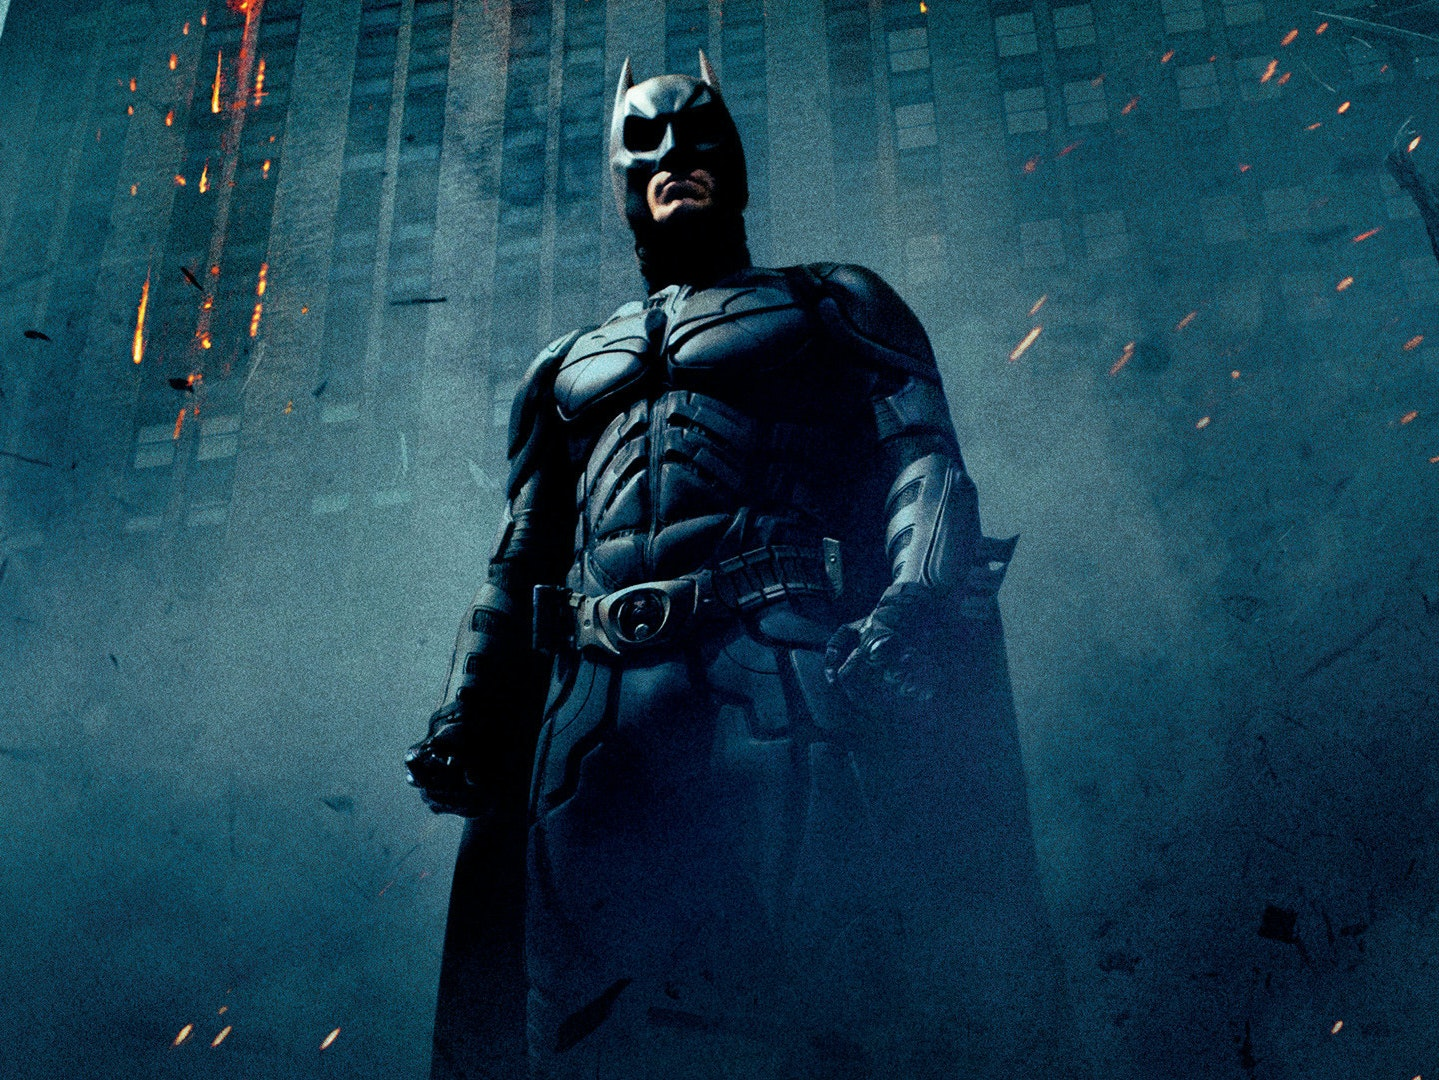 Where Did DC Go Wrong After 'The Dark Knight', One Of The Greatest Superhero Films?